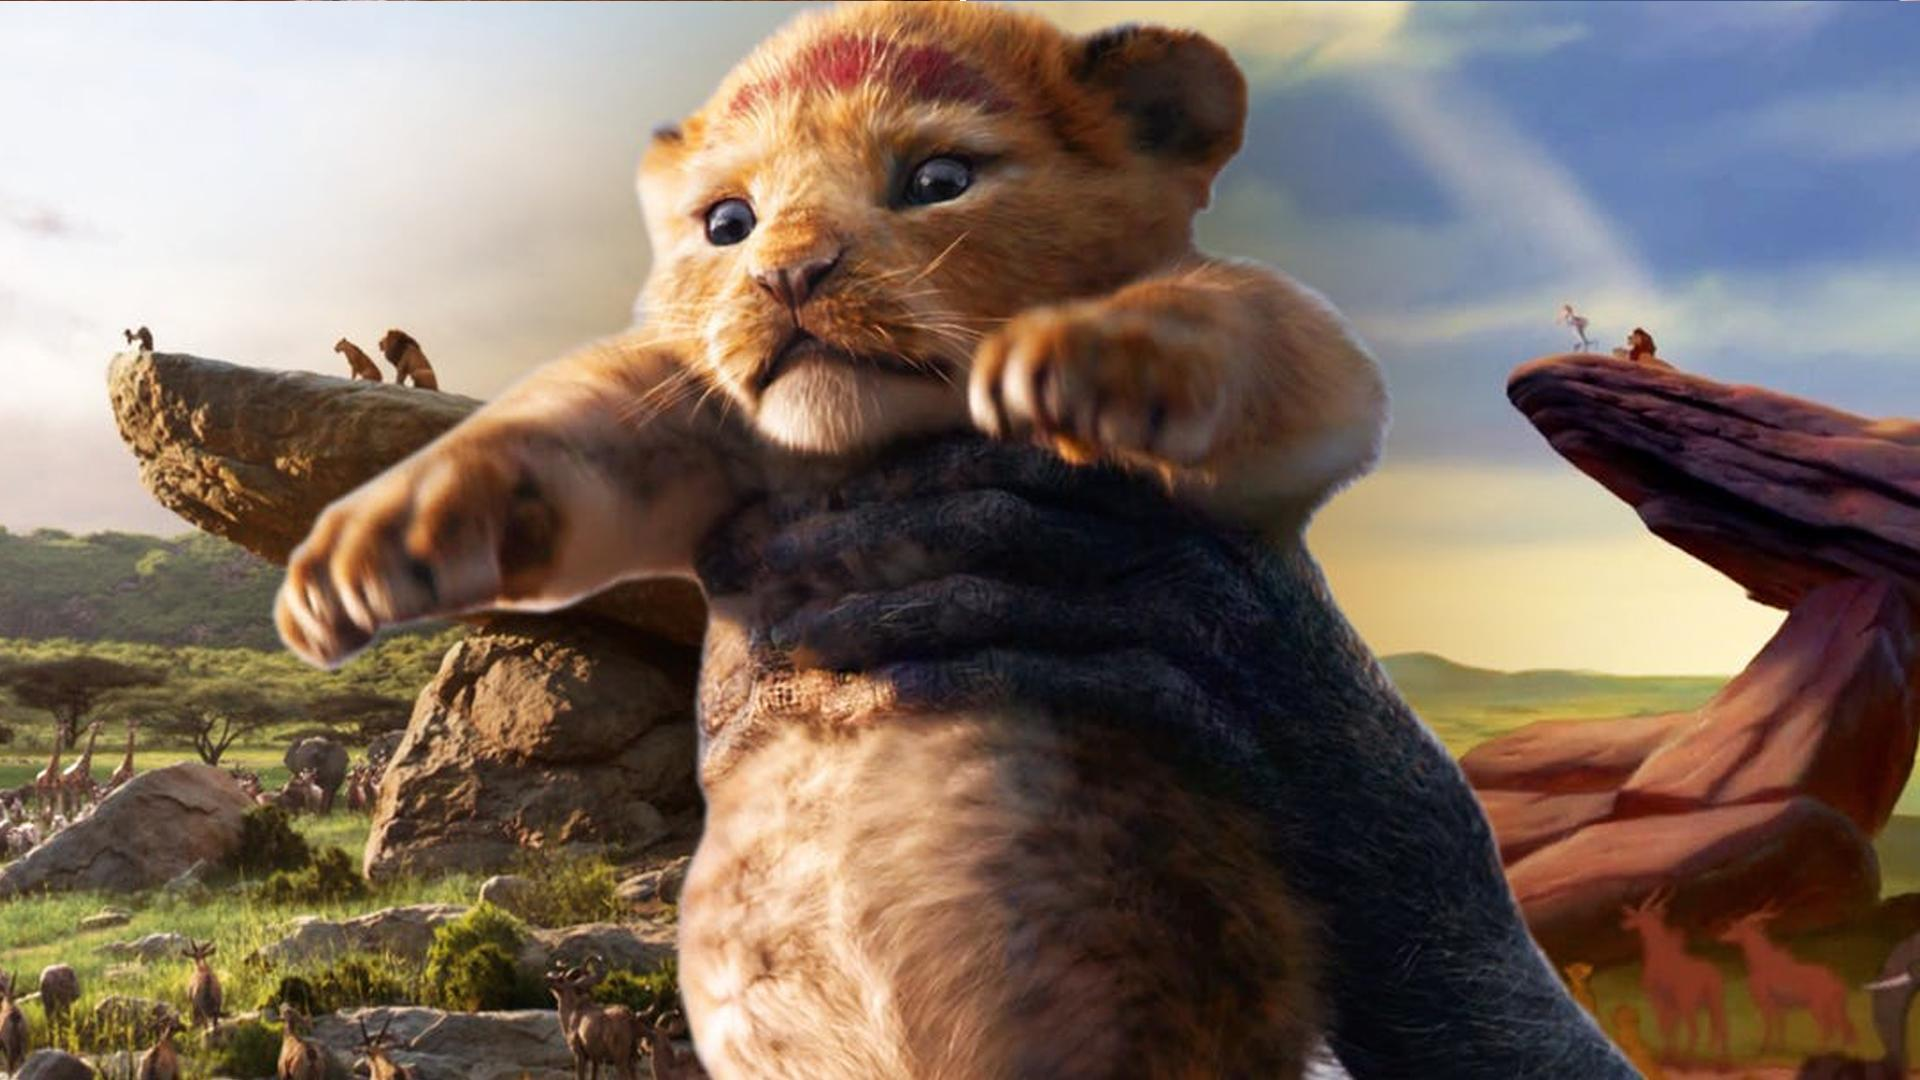 Disney's Upcoming Lion King Remake Pushes The Boundaries Of VR